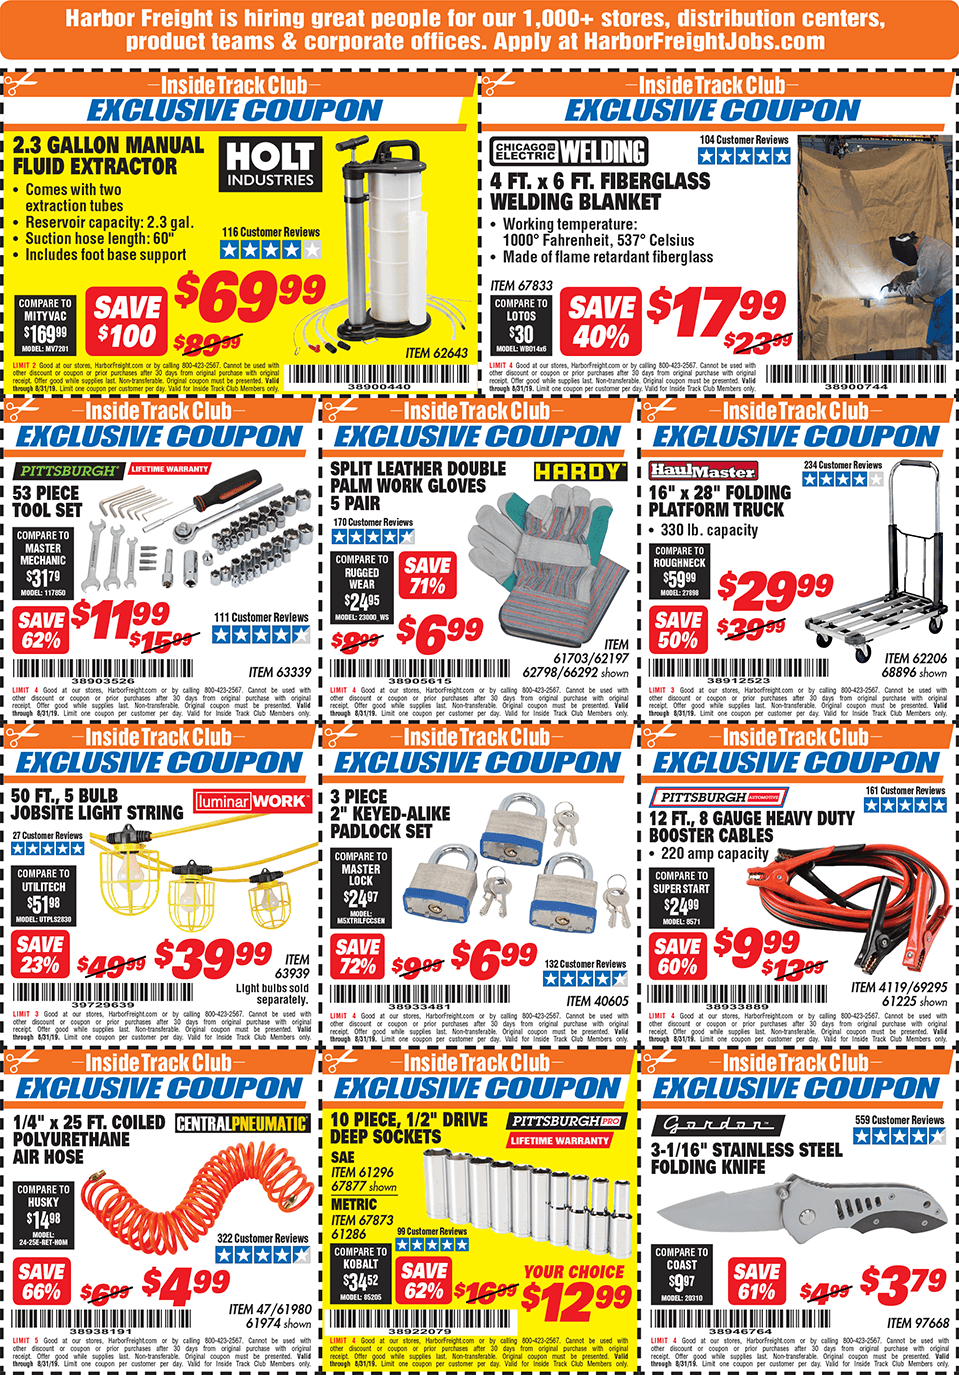 Harbor Freight Inside Track Club Coupons – May 12222